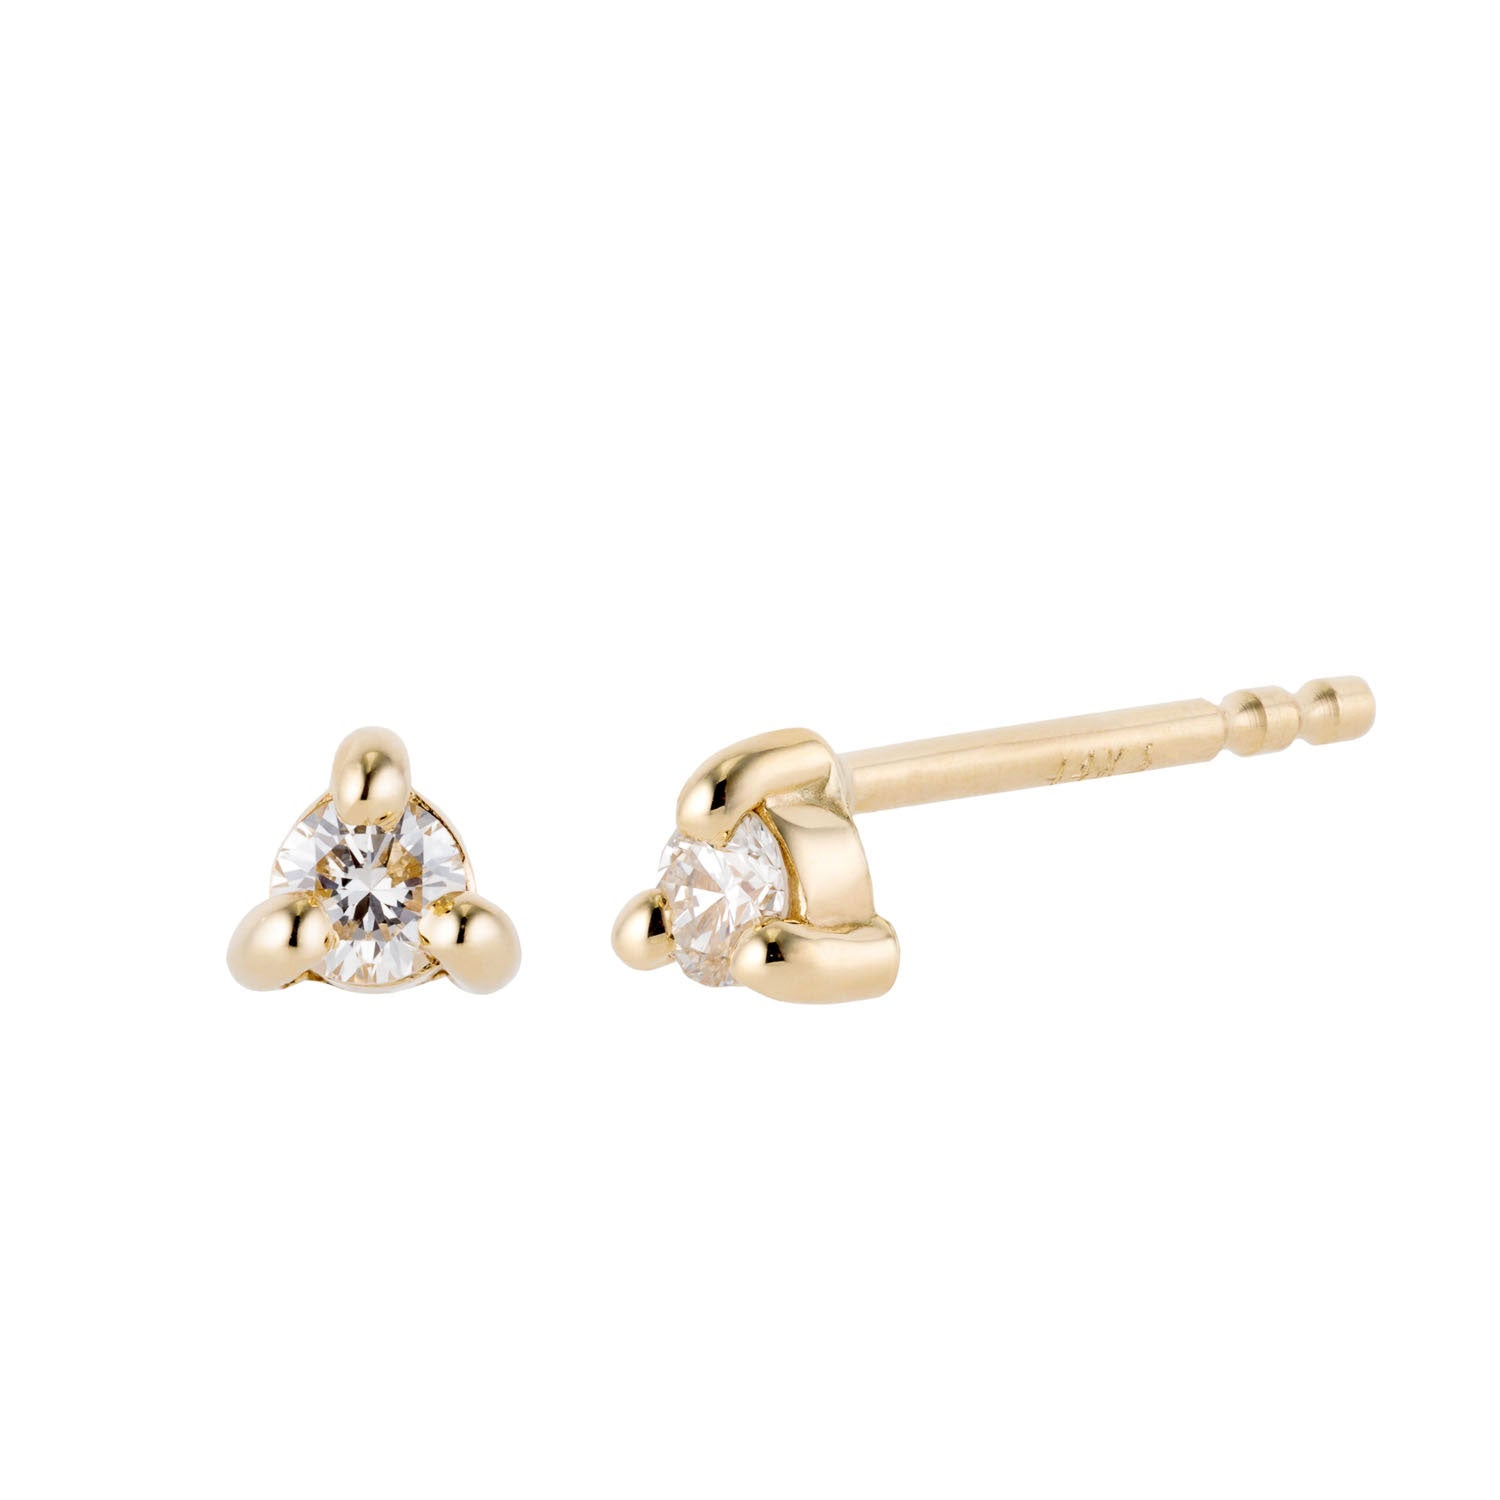 Tiny diamond stud earrings 14k yellow gold by Valerie Madison